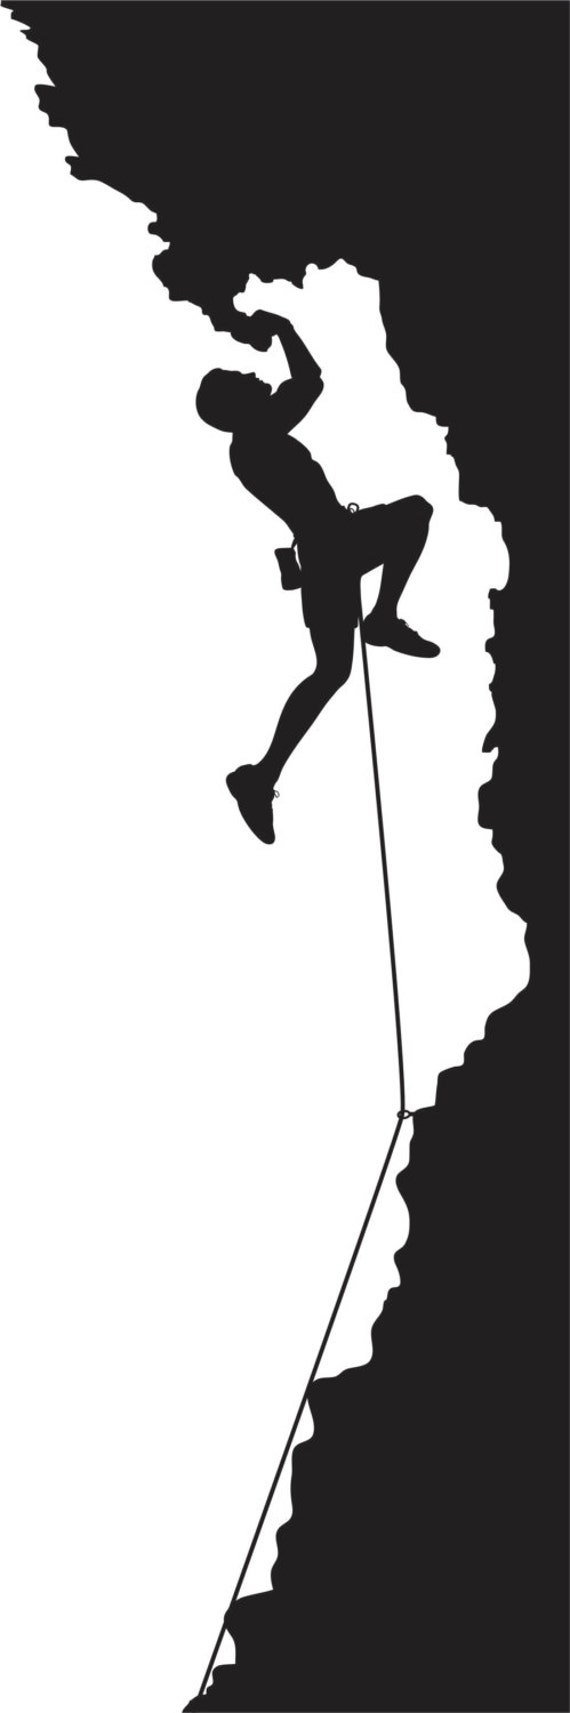 Items Similar To Black And White Die Cut Rock Climbing